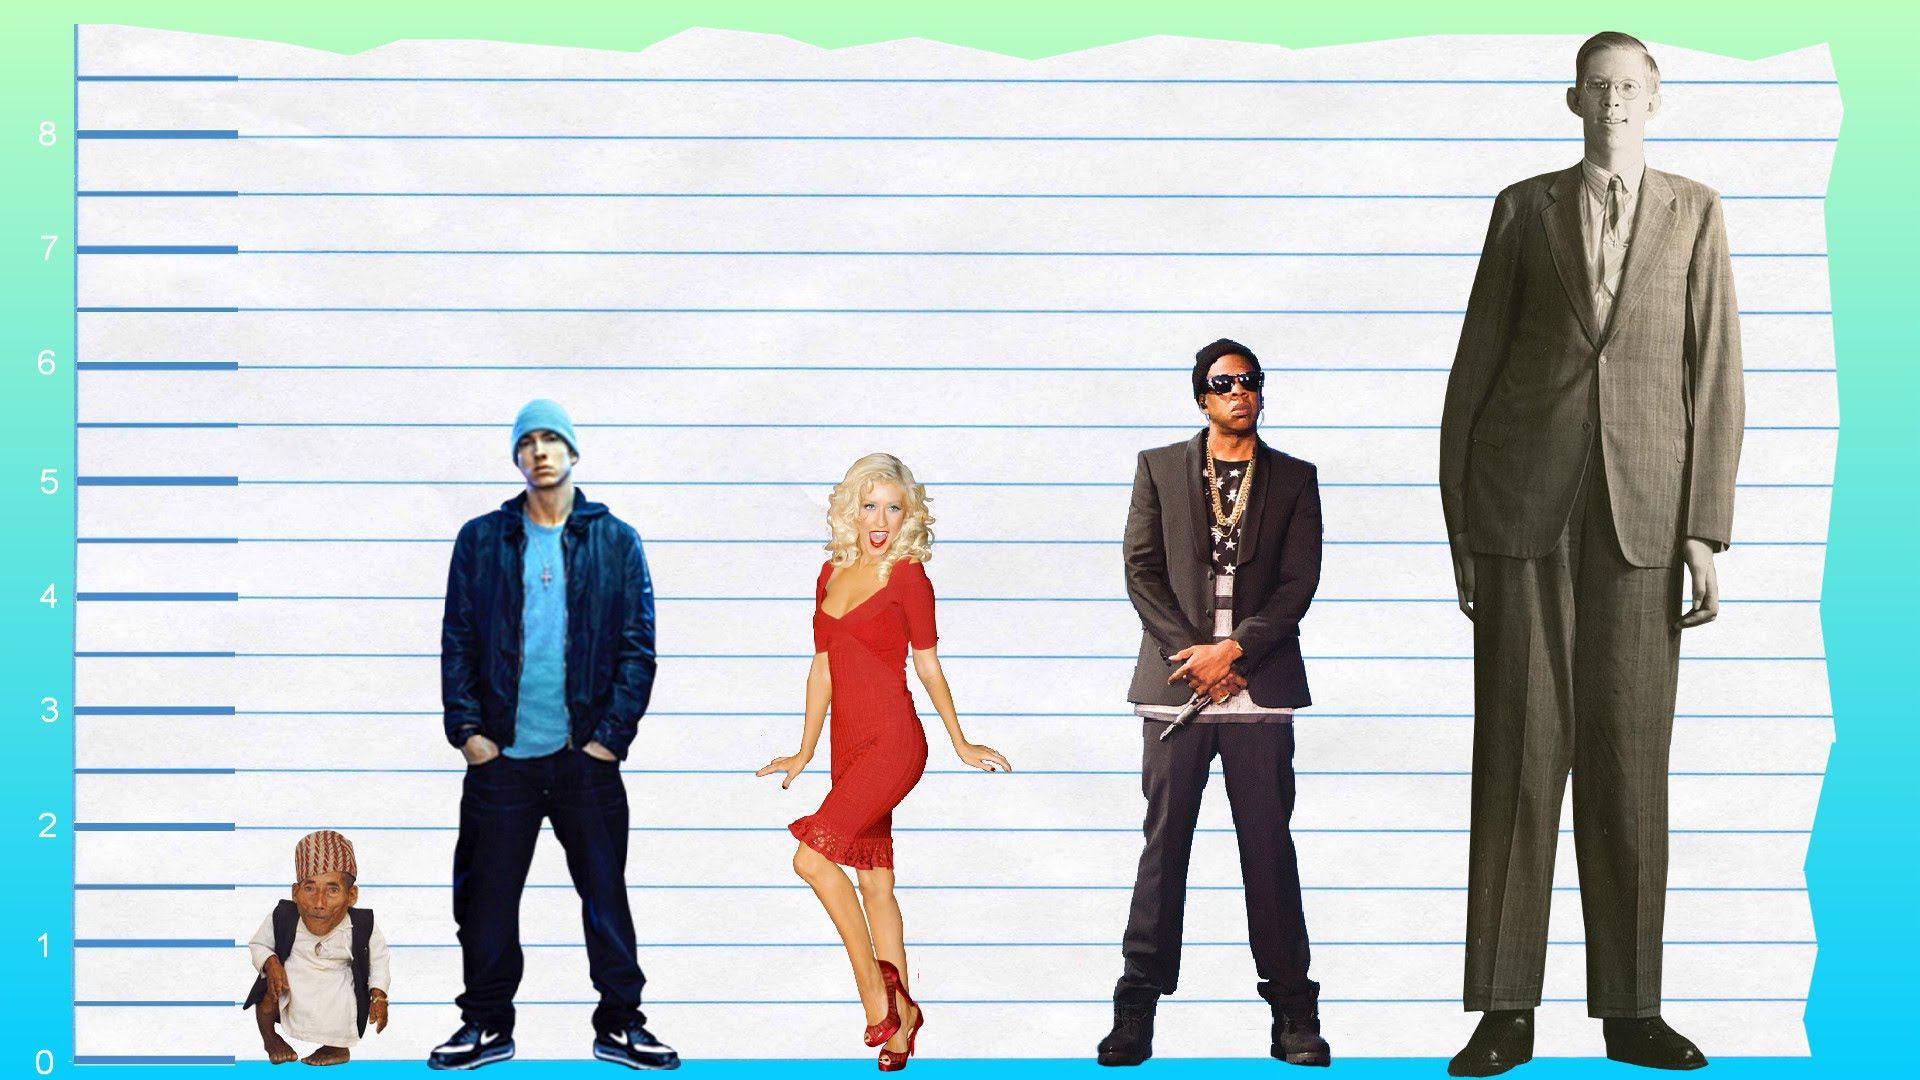 How Tall Is Eminem? - Height Comparison! - YouTube